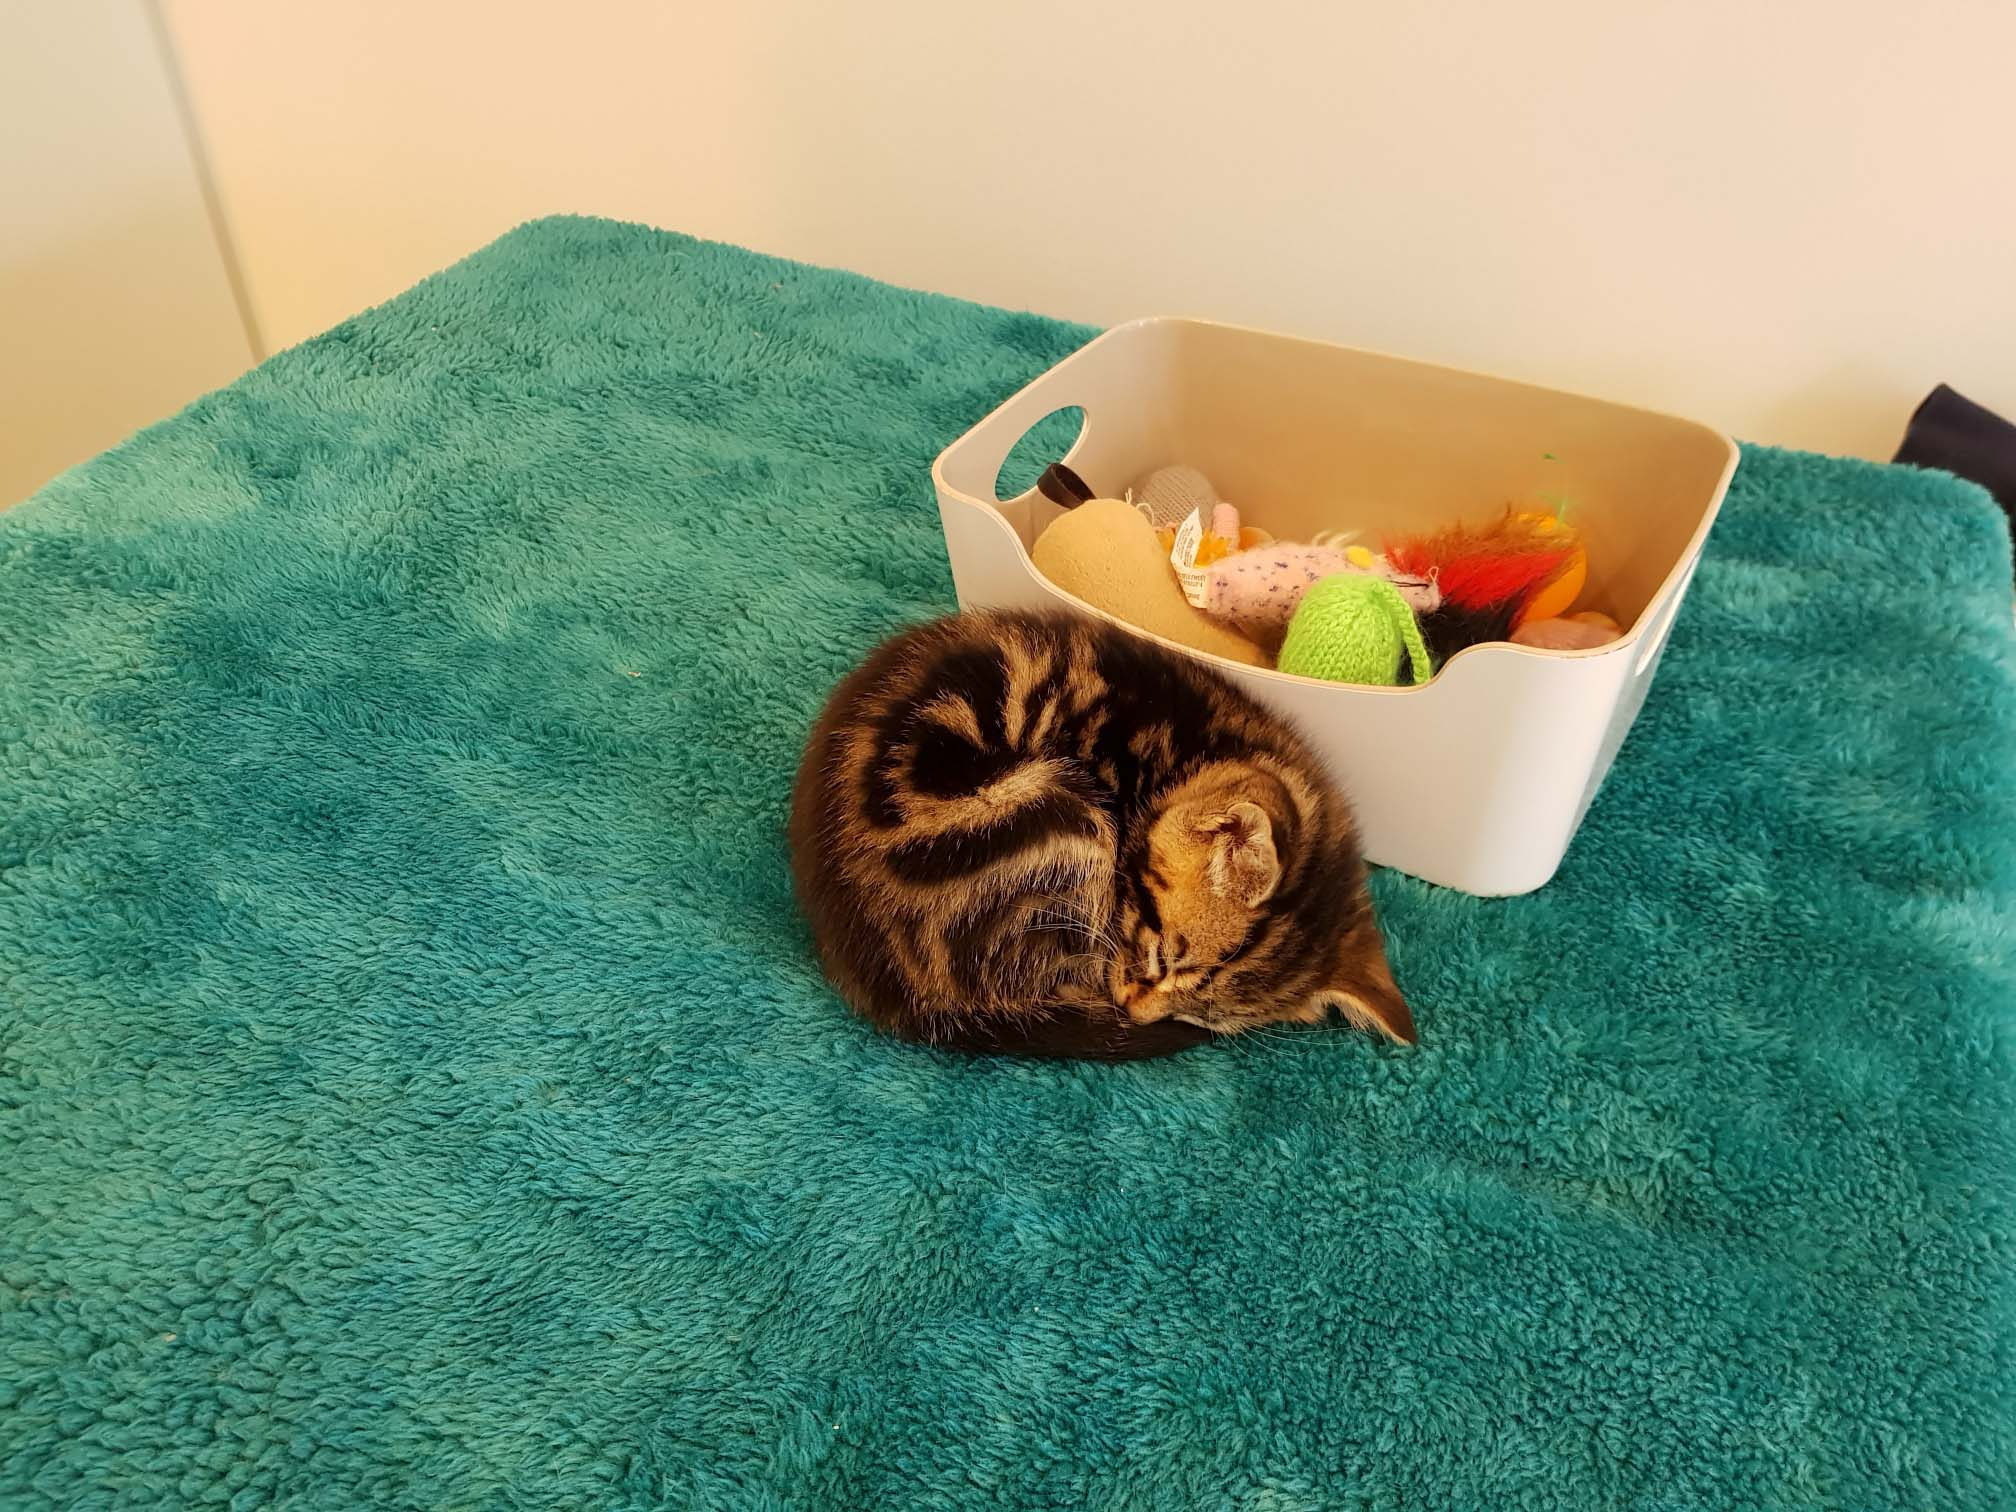 Teddy kittten and his toy box